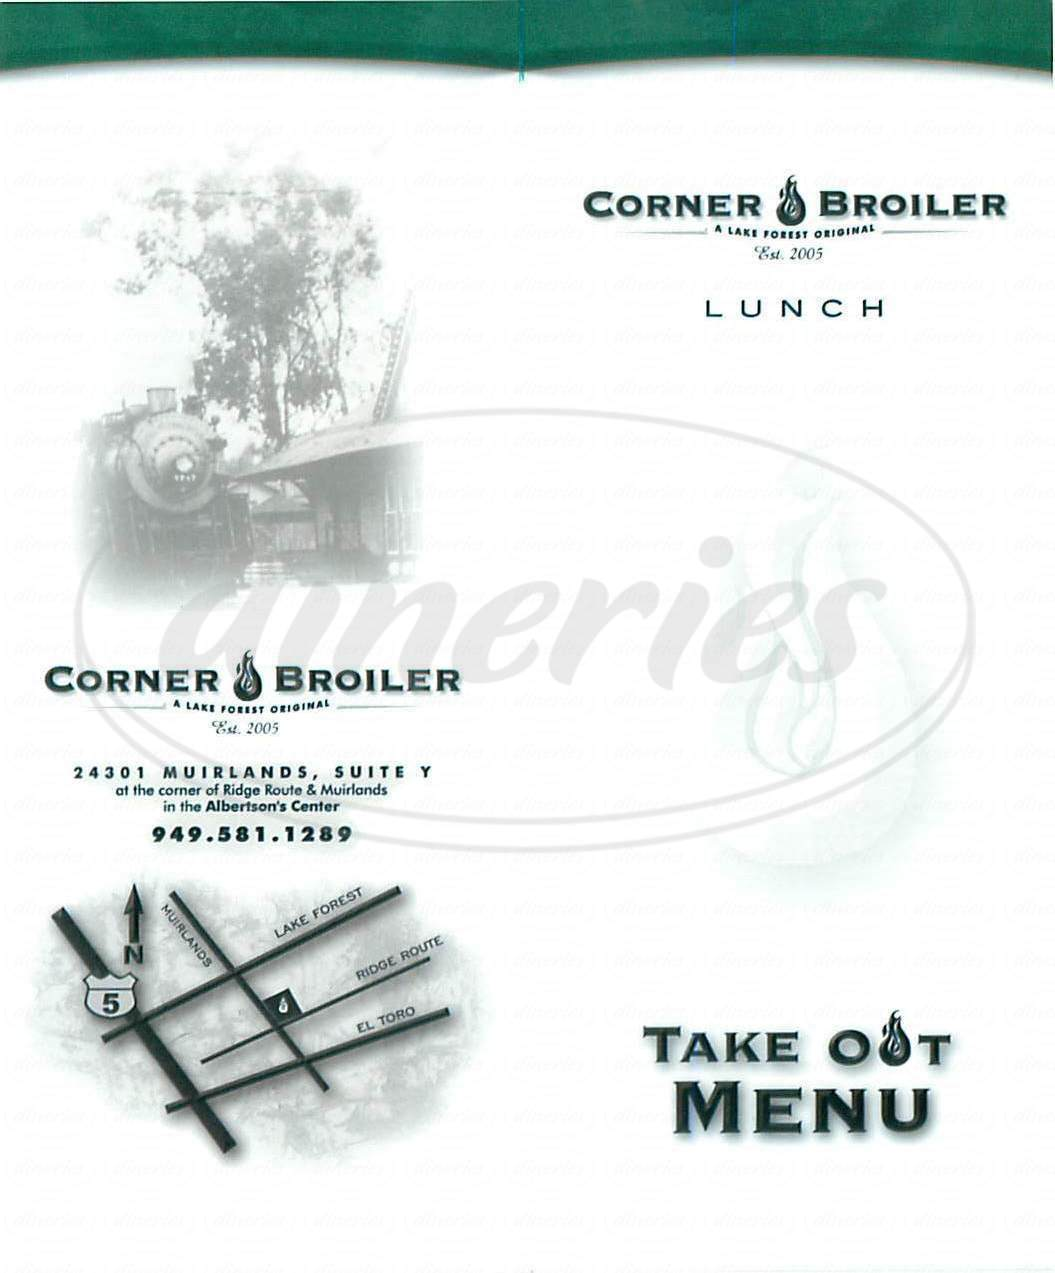 menu for Corner Broiler